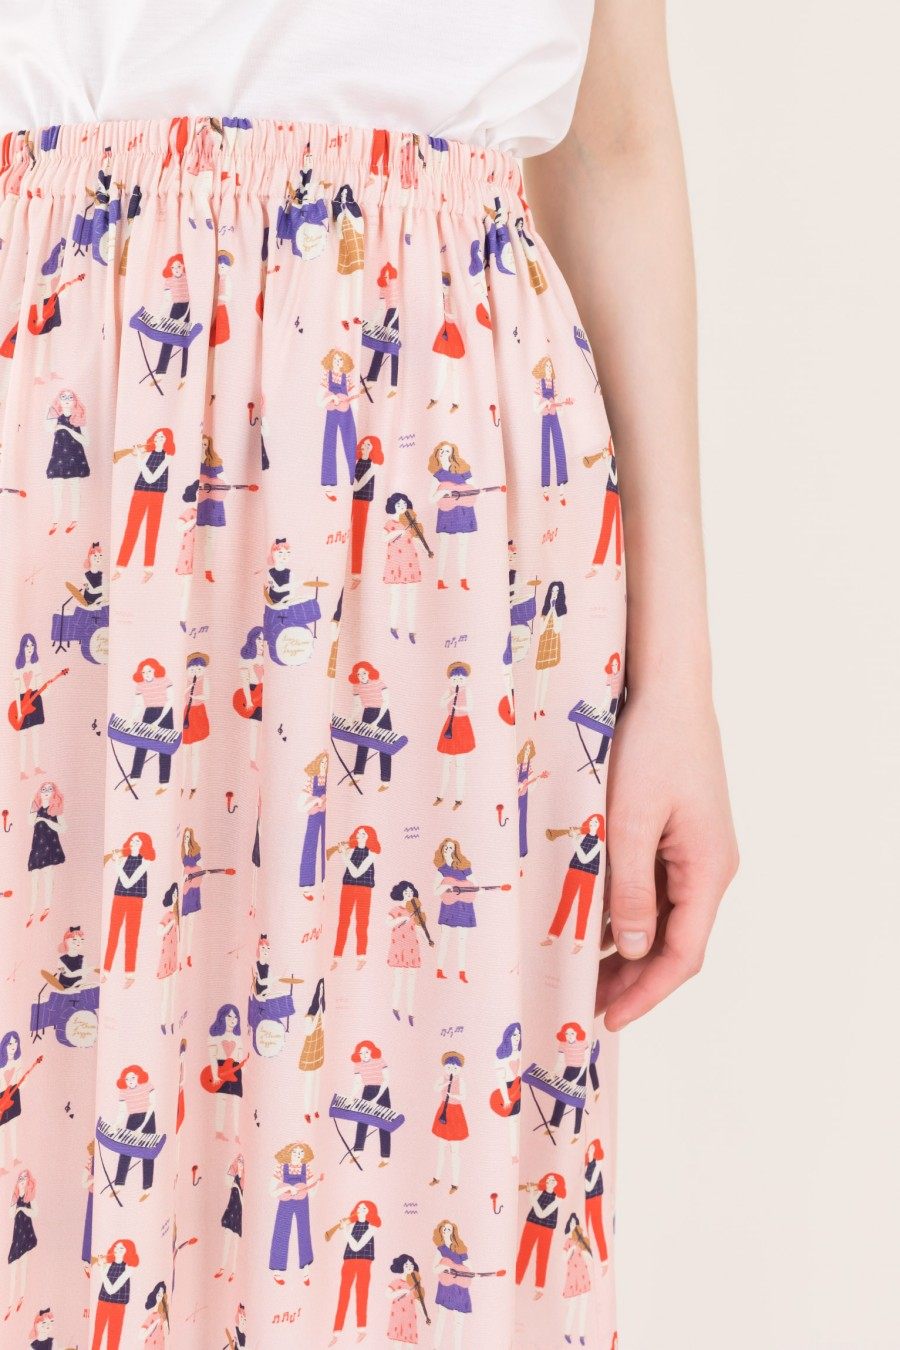 Pink skirt with illustration